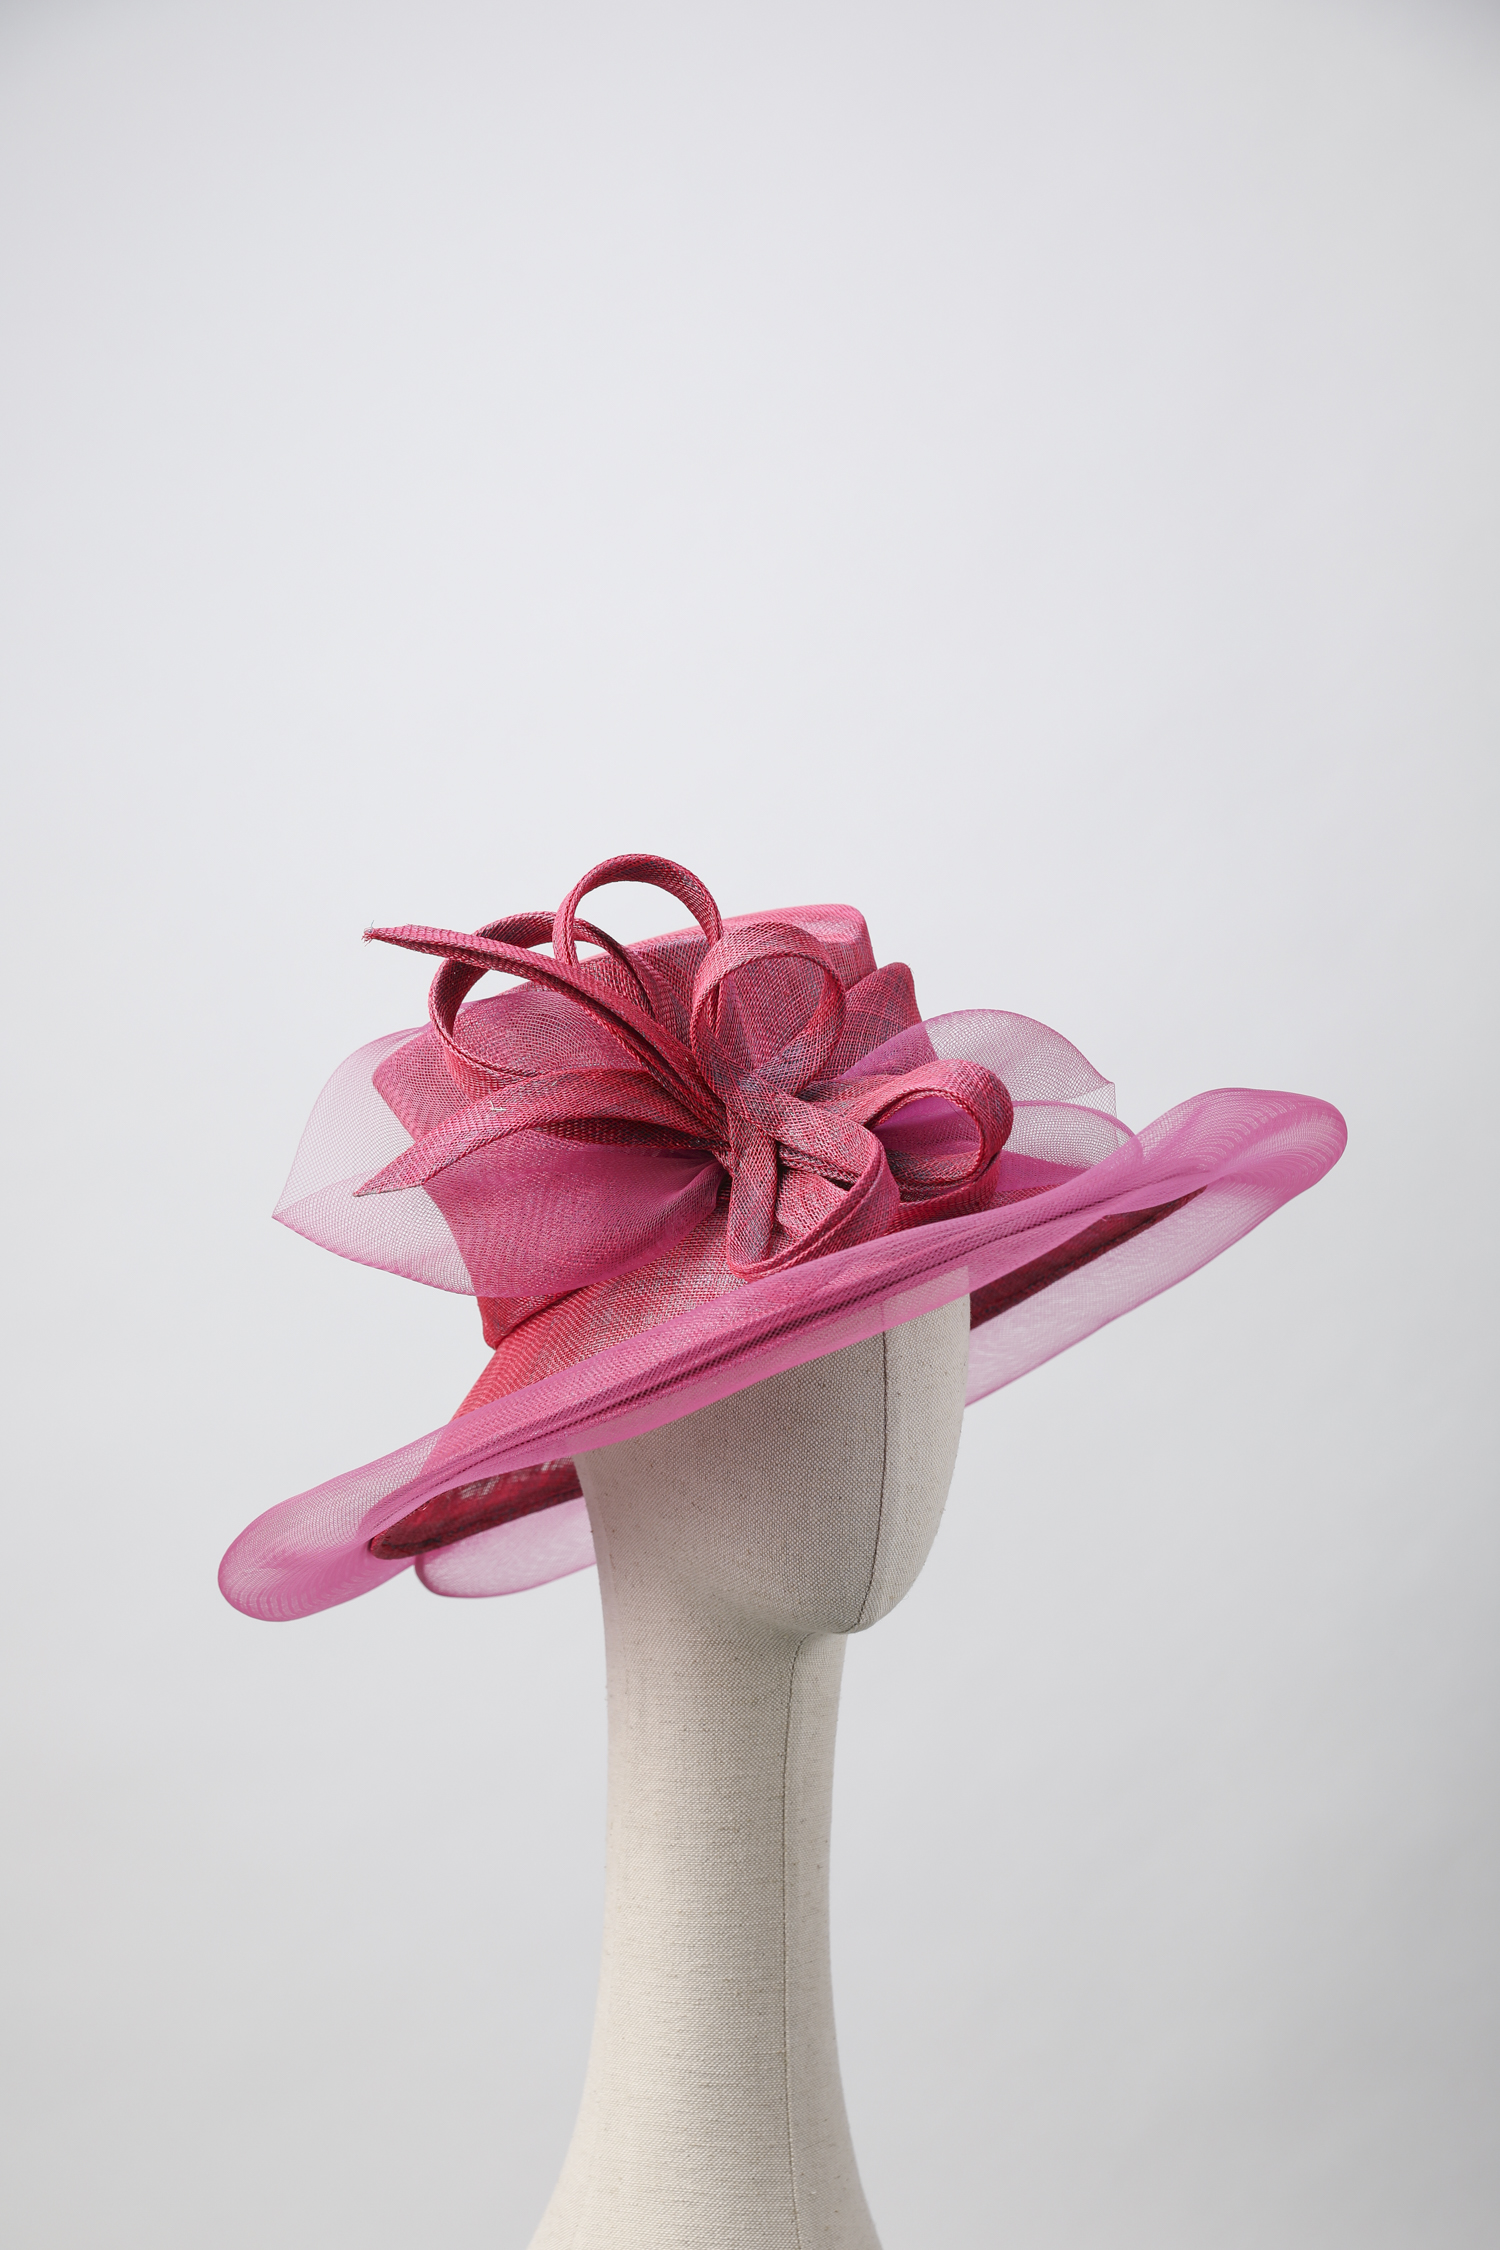 Copy of Jaycow Millinery by Jay Cheng Sample Stock 2019 (16).jpg